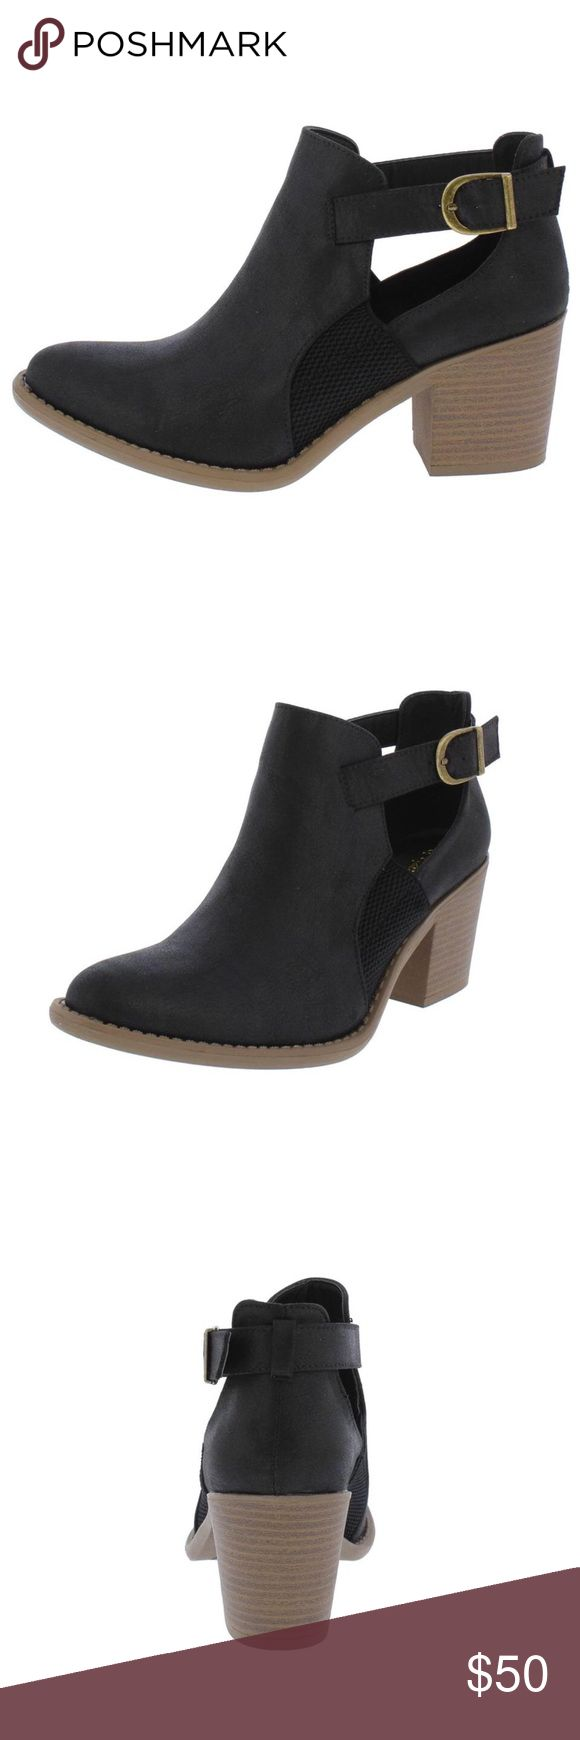 TOBIN BLACK SIDE STRAP CUT OUT ANKLE BOOT ON DEMAND  These boots are ready for your next adventure!  Features rear wrapped buckle strap with side cut outs. Slide on construction. An almond toe paired with a short stacked heel. Man made materials.  Approximate heel height 2 1/2 inches SHIPPING MIGHT TAKE UP TO 3 DAYS DUE TO AVAILABILITY Qupid Shoes Ankle Boots & Booties